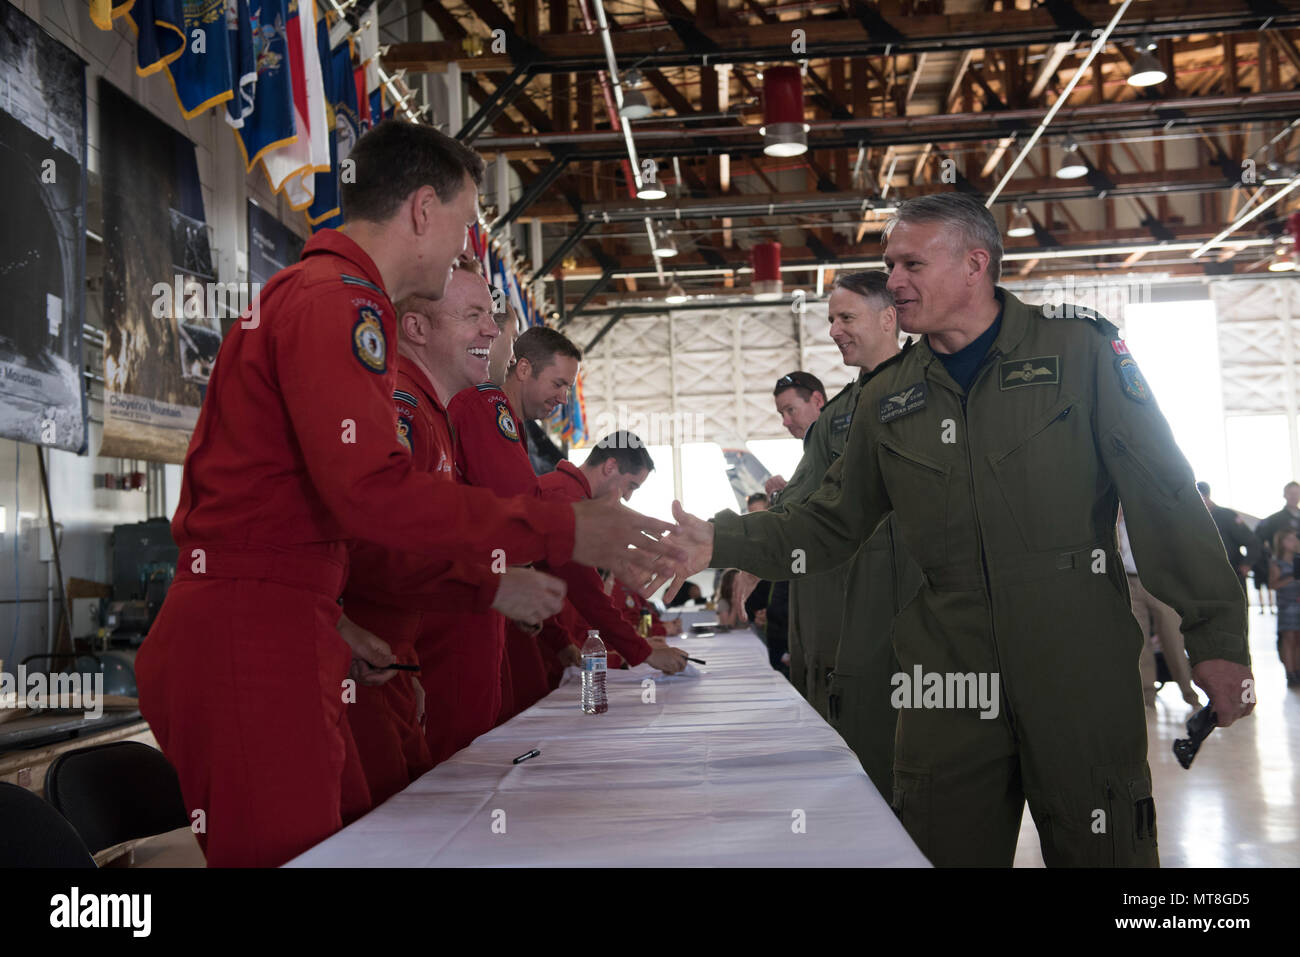 Members of the Royal Canadian Air Force's Snowbirds aerial demonstration team greet guests at the North American Aerospace Defense Command's 60th Anniversary Ceremony on Peterson Air Force Base Colorado, May 12, 2018. The ceremony and static display of various NORAD aircraft was the culmination of a three-day event, which included a media tour of Cheyenne Mountain Air Force Station, the dedication of a cairn outside the commands' headquarters building memorializing the Canadians who have passed away while serving NORAD, and a fly over in missing-man formation performed by the Royal Canadian Ai Stock Photo